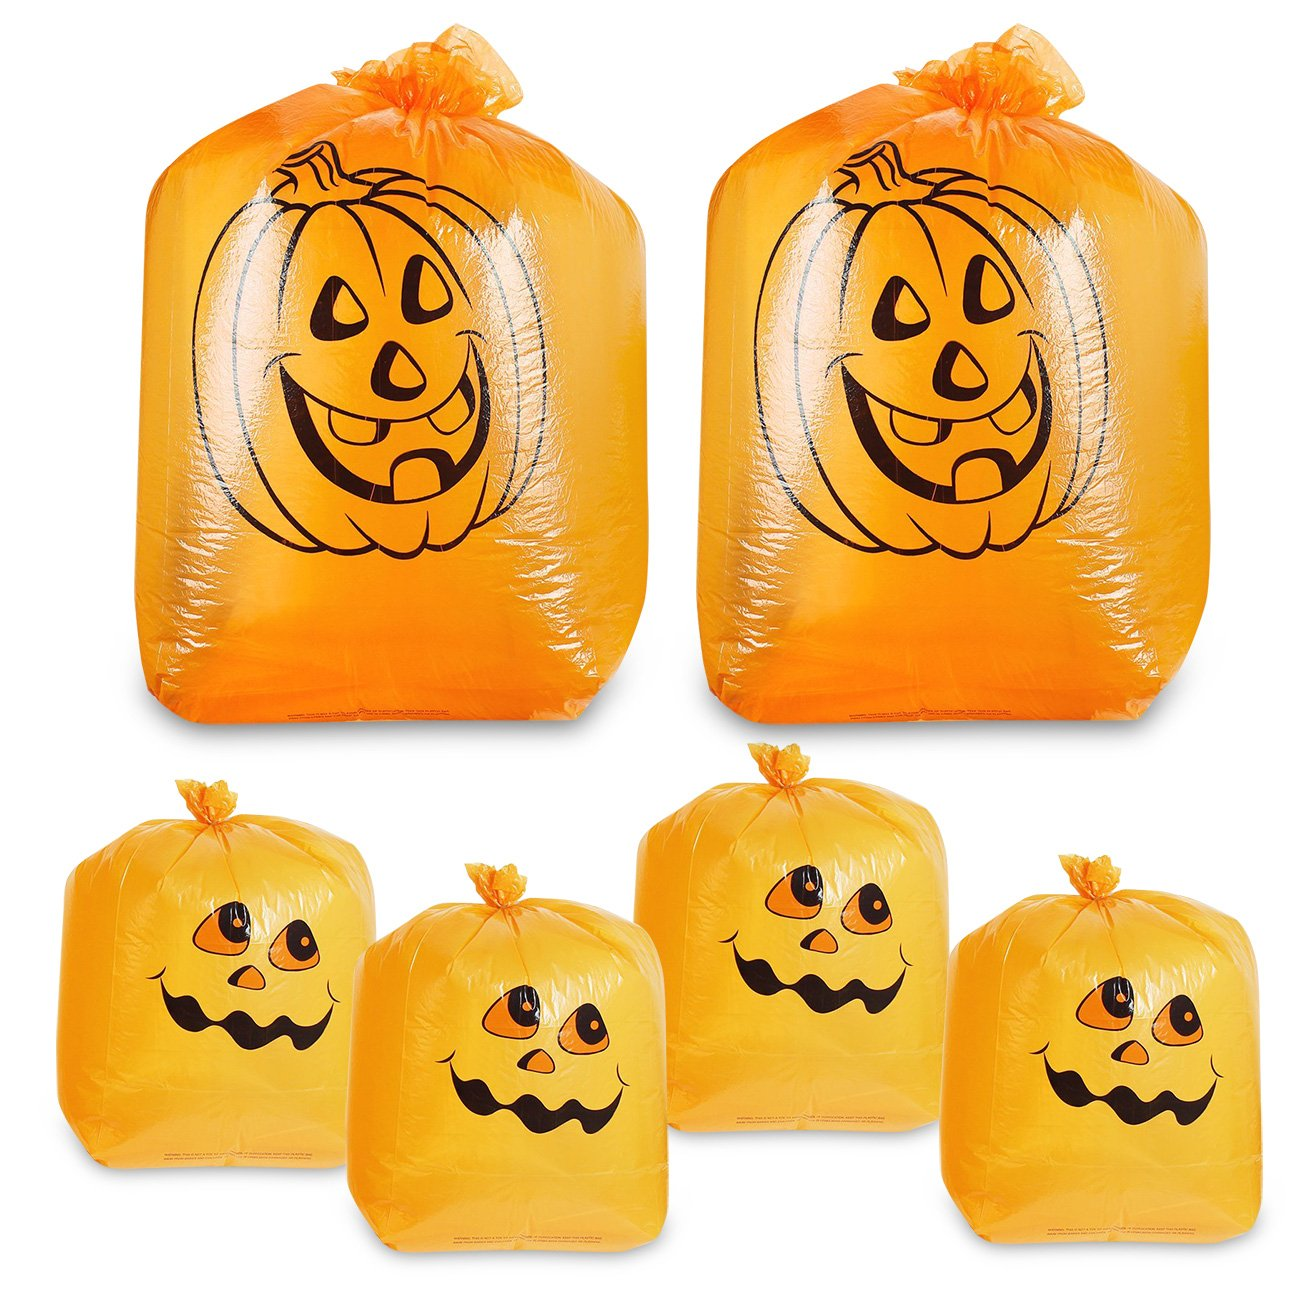 Juvale Pack of 6 Pumpkin Leaf Bag - Small Medium Sized Pumpkin Trash Bags - The Perfect Fall Lawn Decoration, Orange